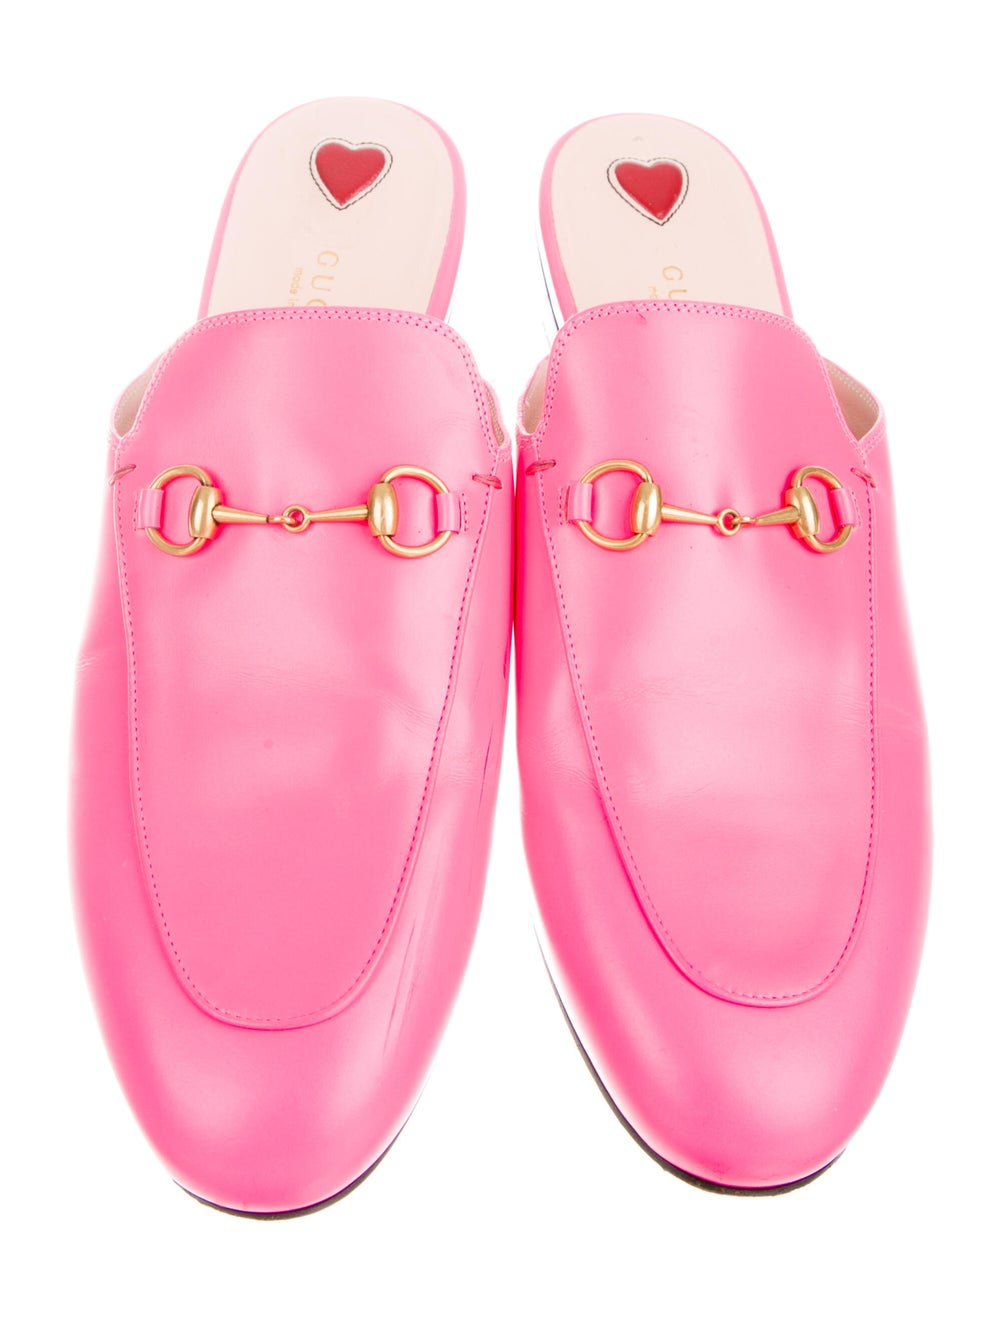 Gucci Princetown Horsebit Accent Mules Pink - image 3